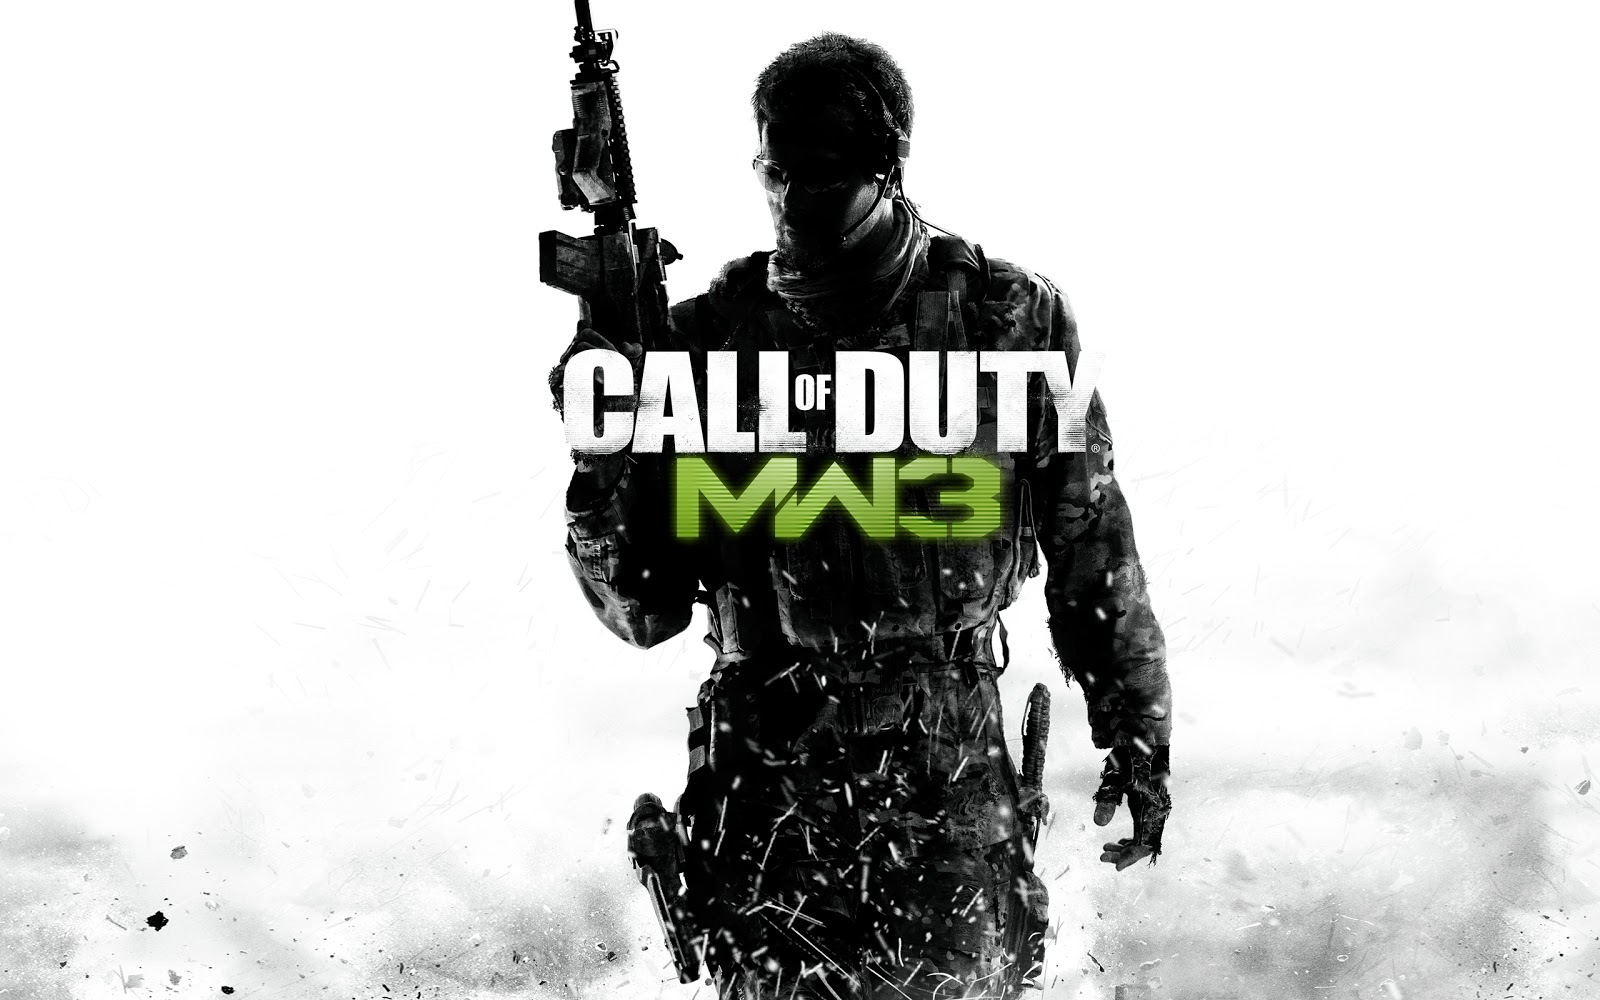 http://1.bp.blogspot.com/-3c-C2hBqwQM/UNSr1tmjLAI/AAAAAAAAAQI/YUNBdrprUdw/s1600/call+of+duty+modern+warfare+3+hd+wallpapers+(9).jpg